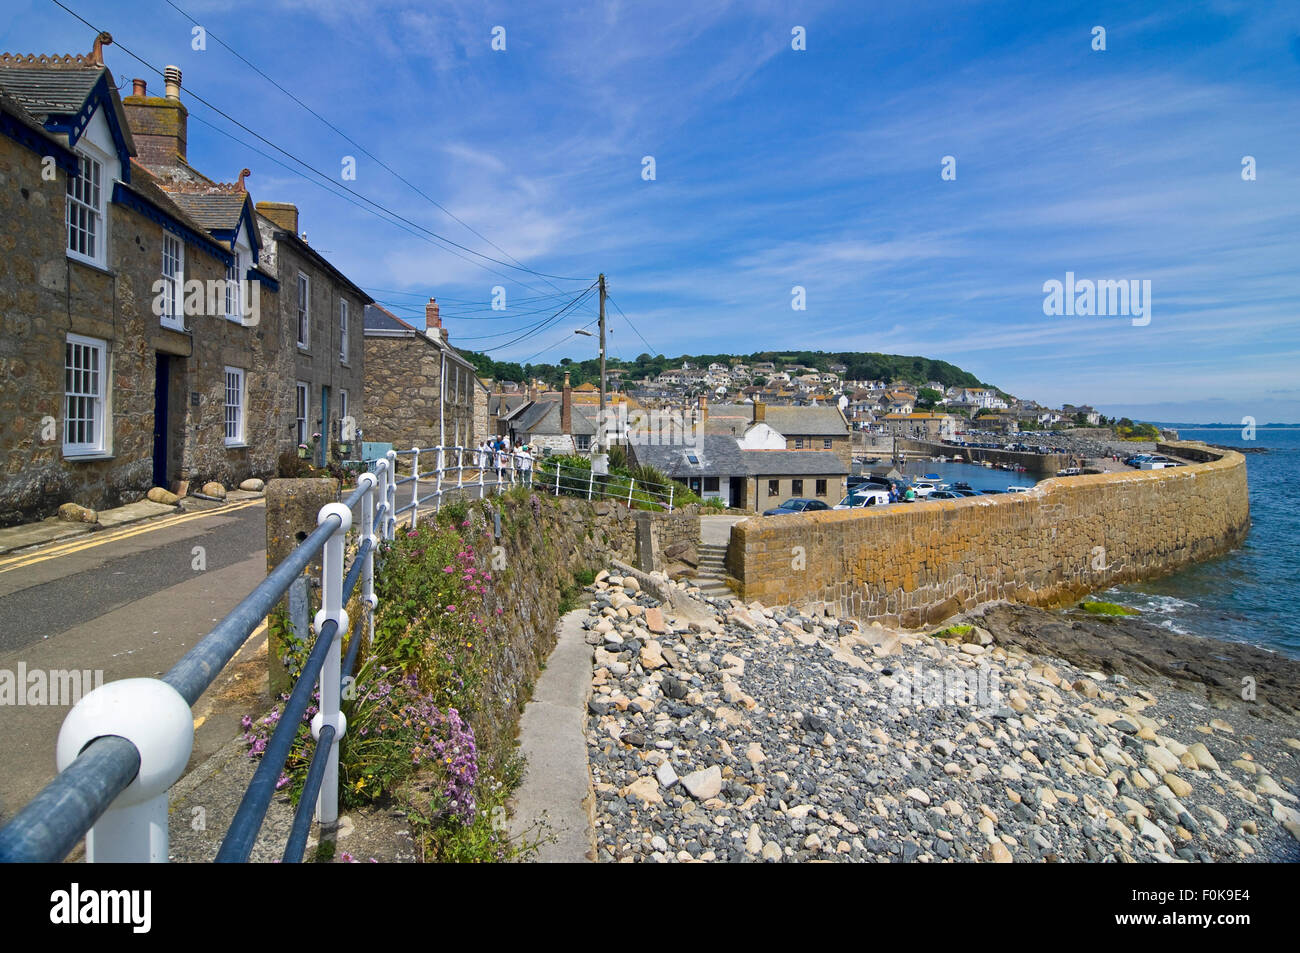 Horizontal street view of Mousehole in Cornwall. Stock Photo